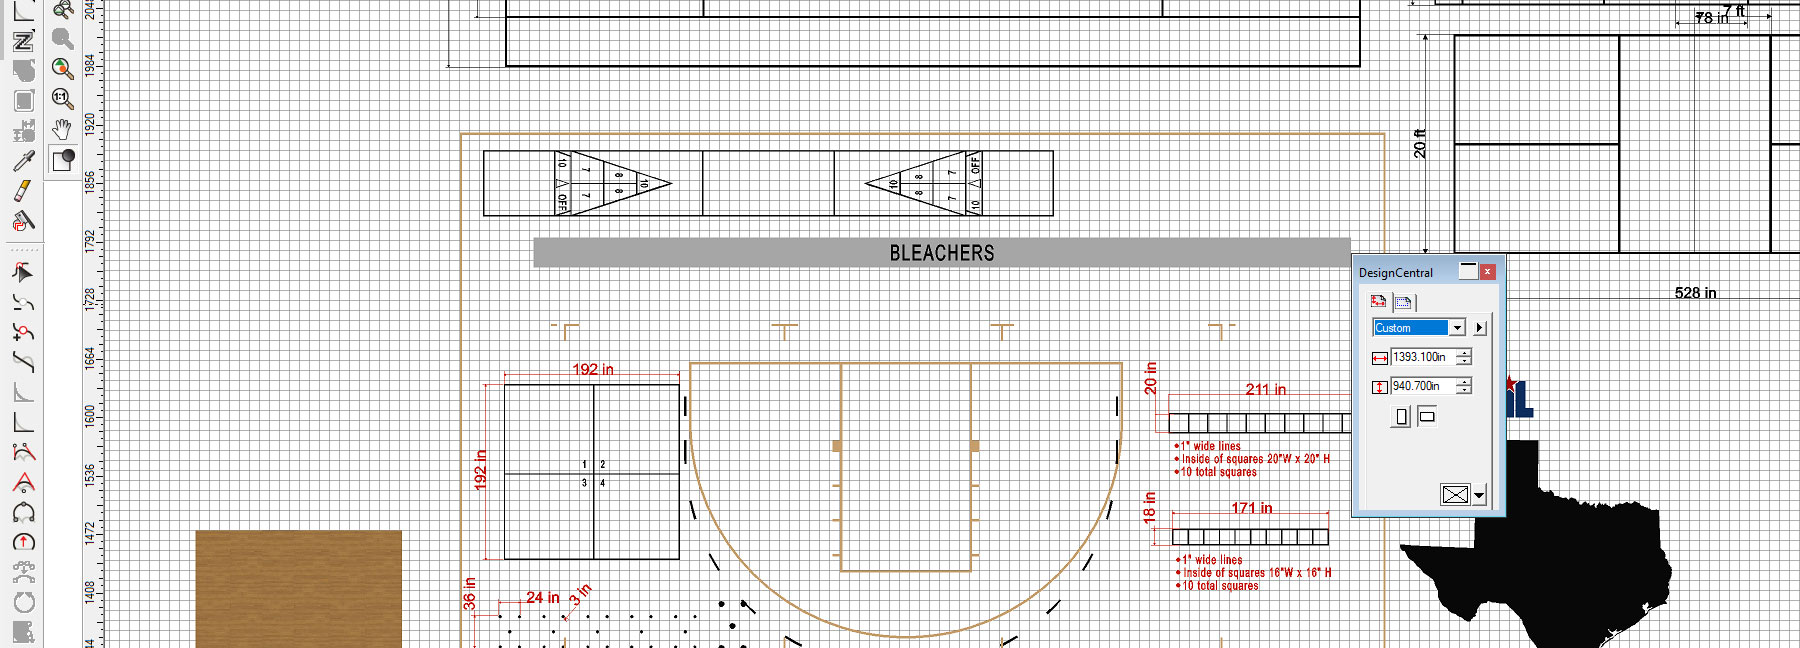 Court Layout – Submitting Artwork